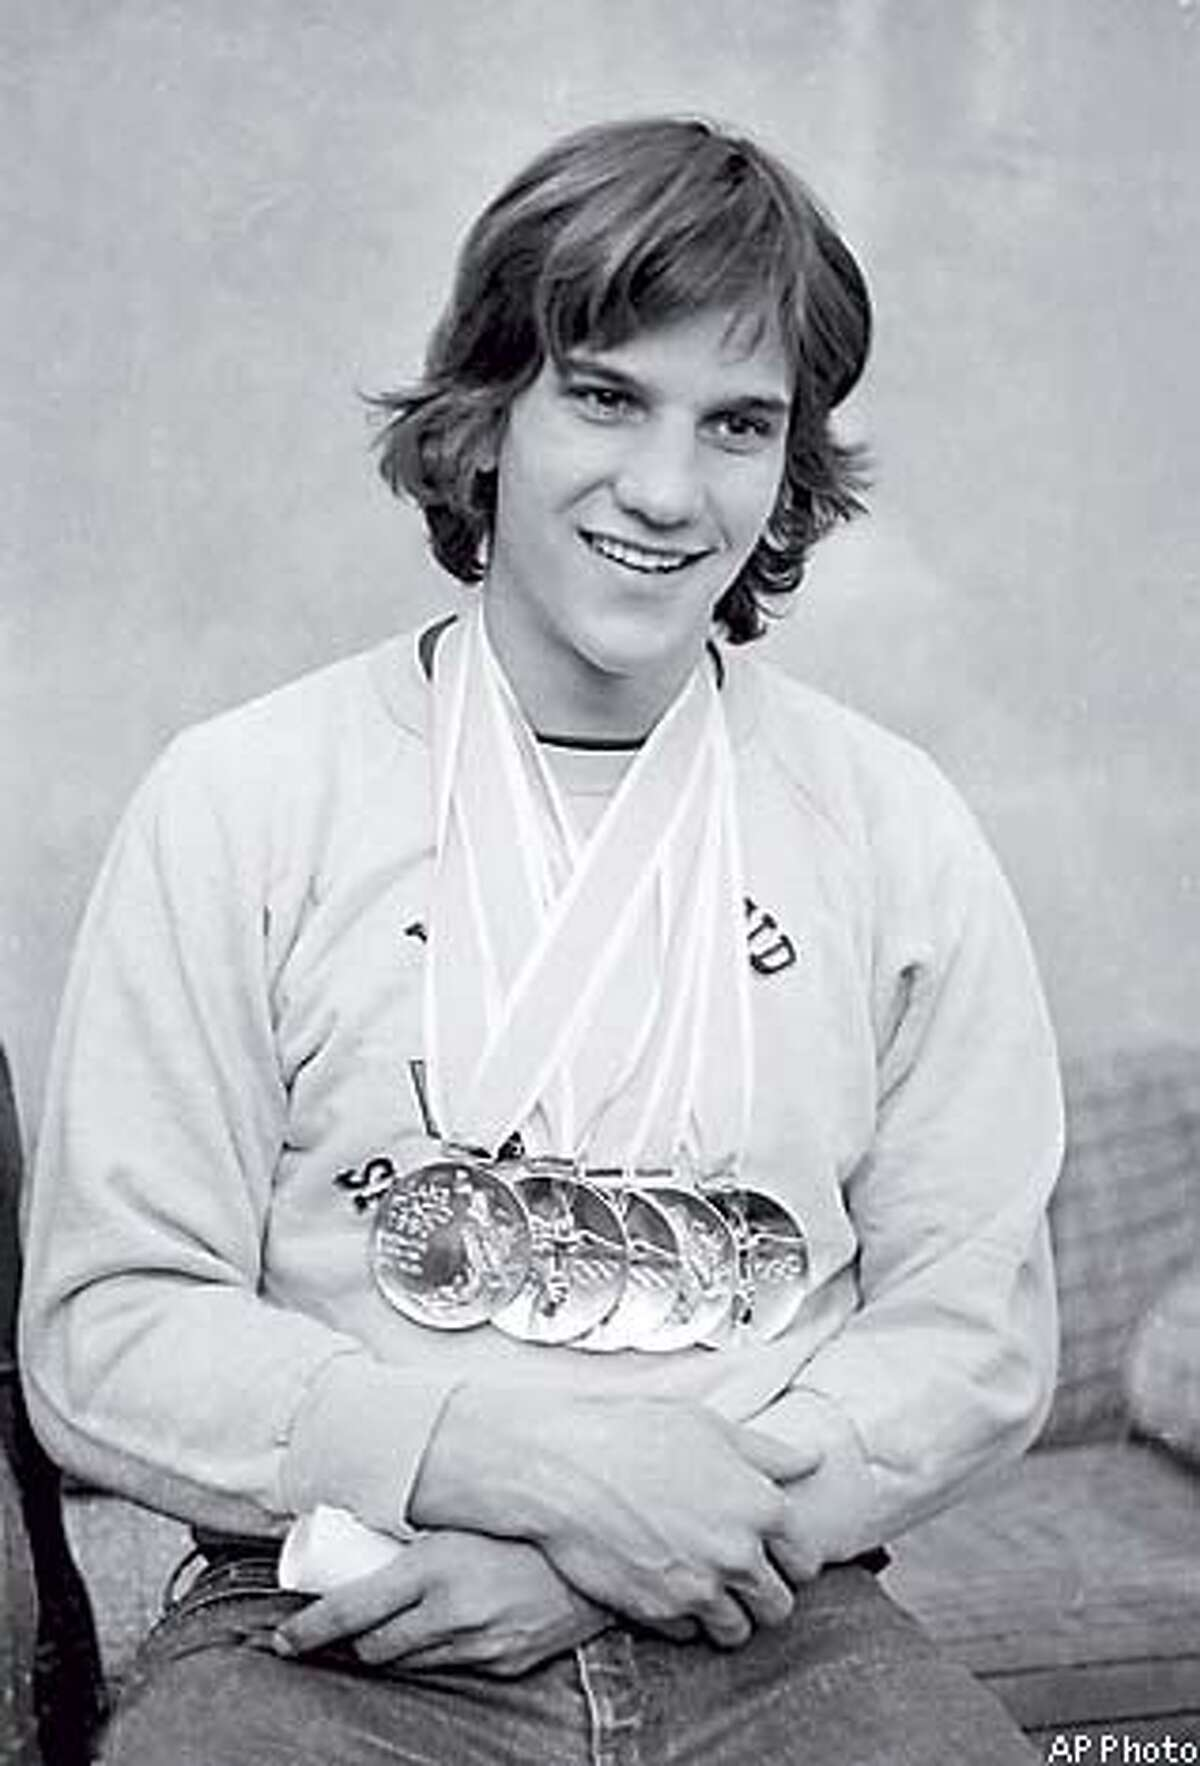 Gold standard: Heiden displays the five gold medals he won in speed skating during the 1980 Winter Olympics in Lake Placid, N.Y. Associated Press Photo, 1980